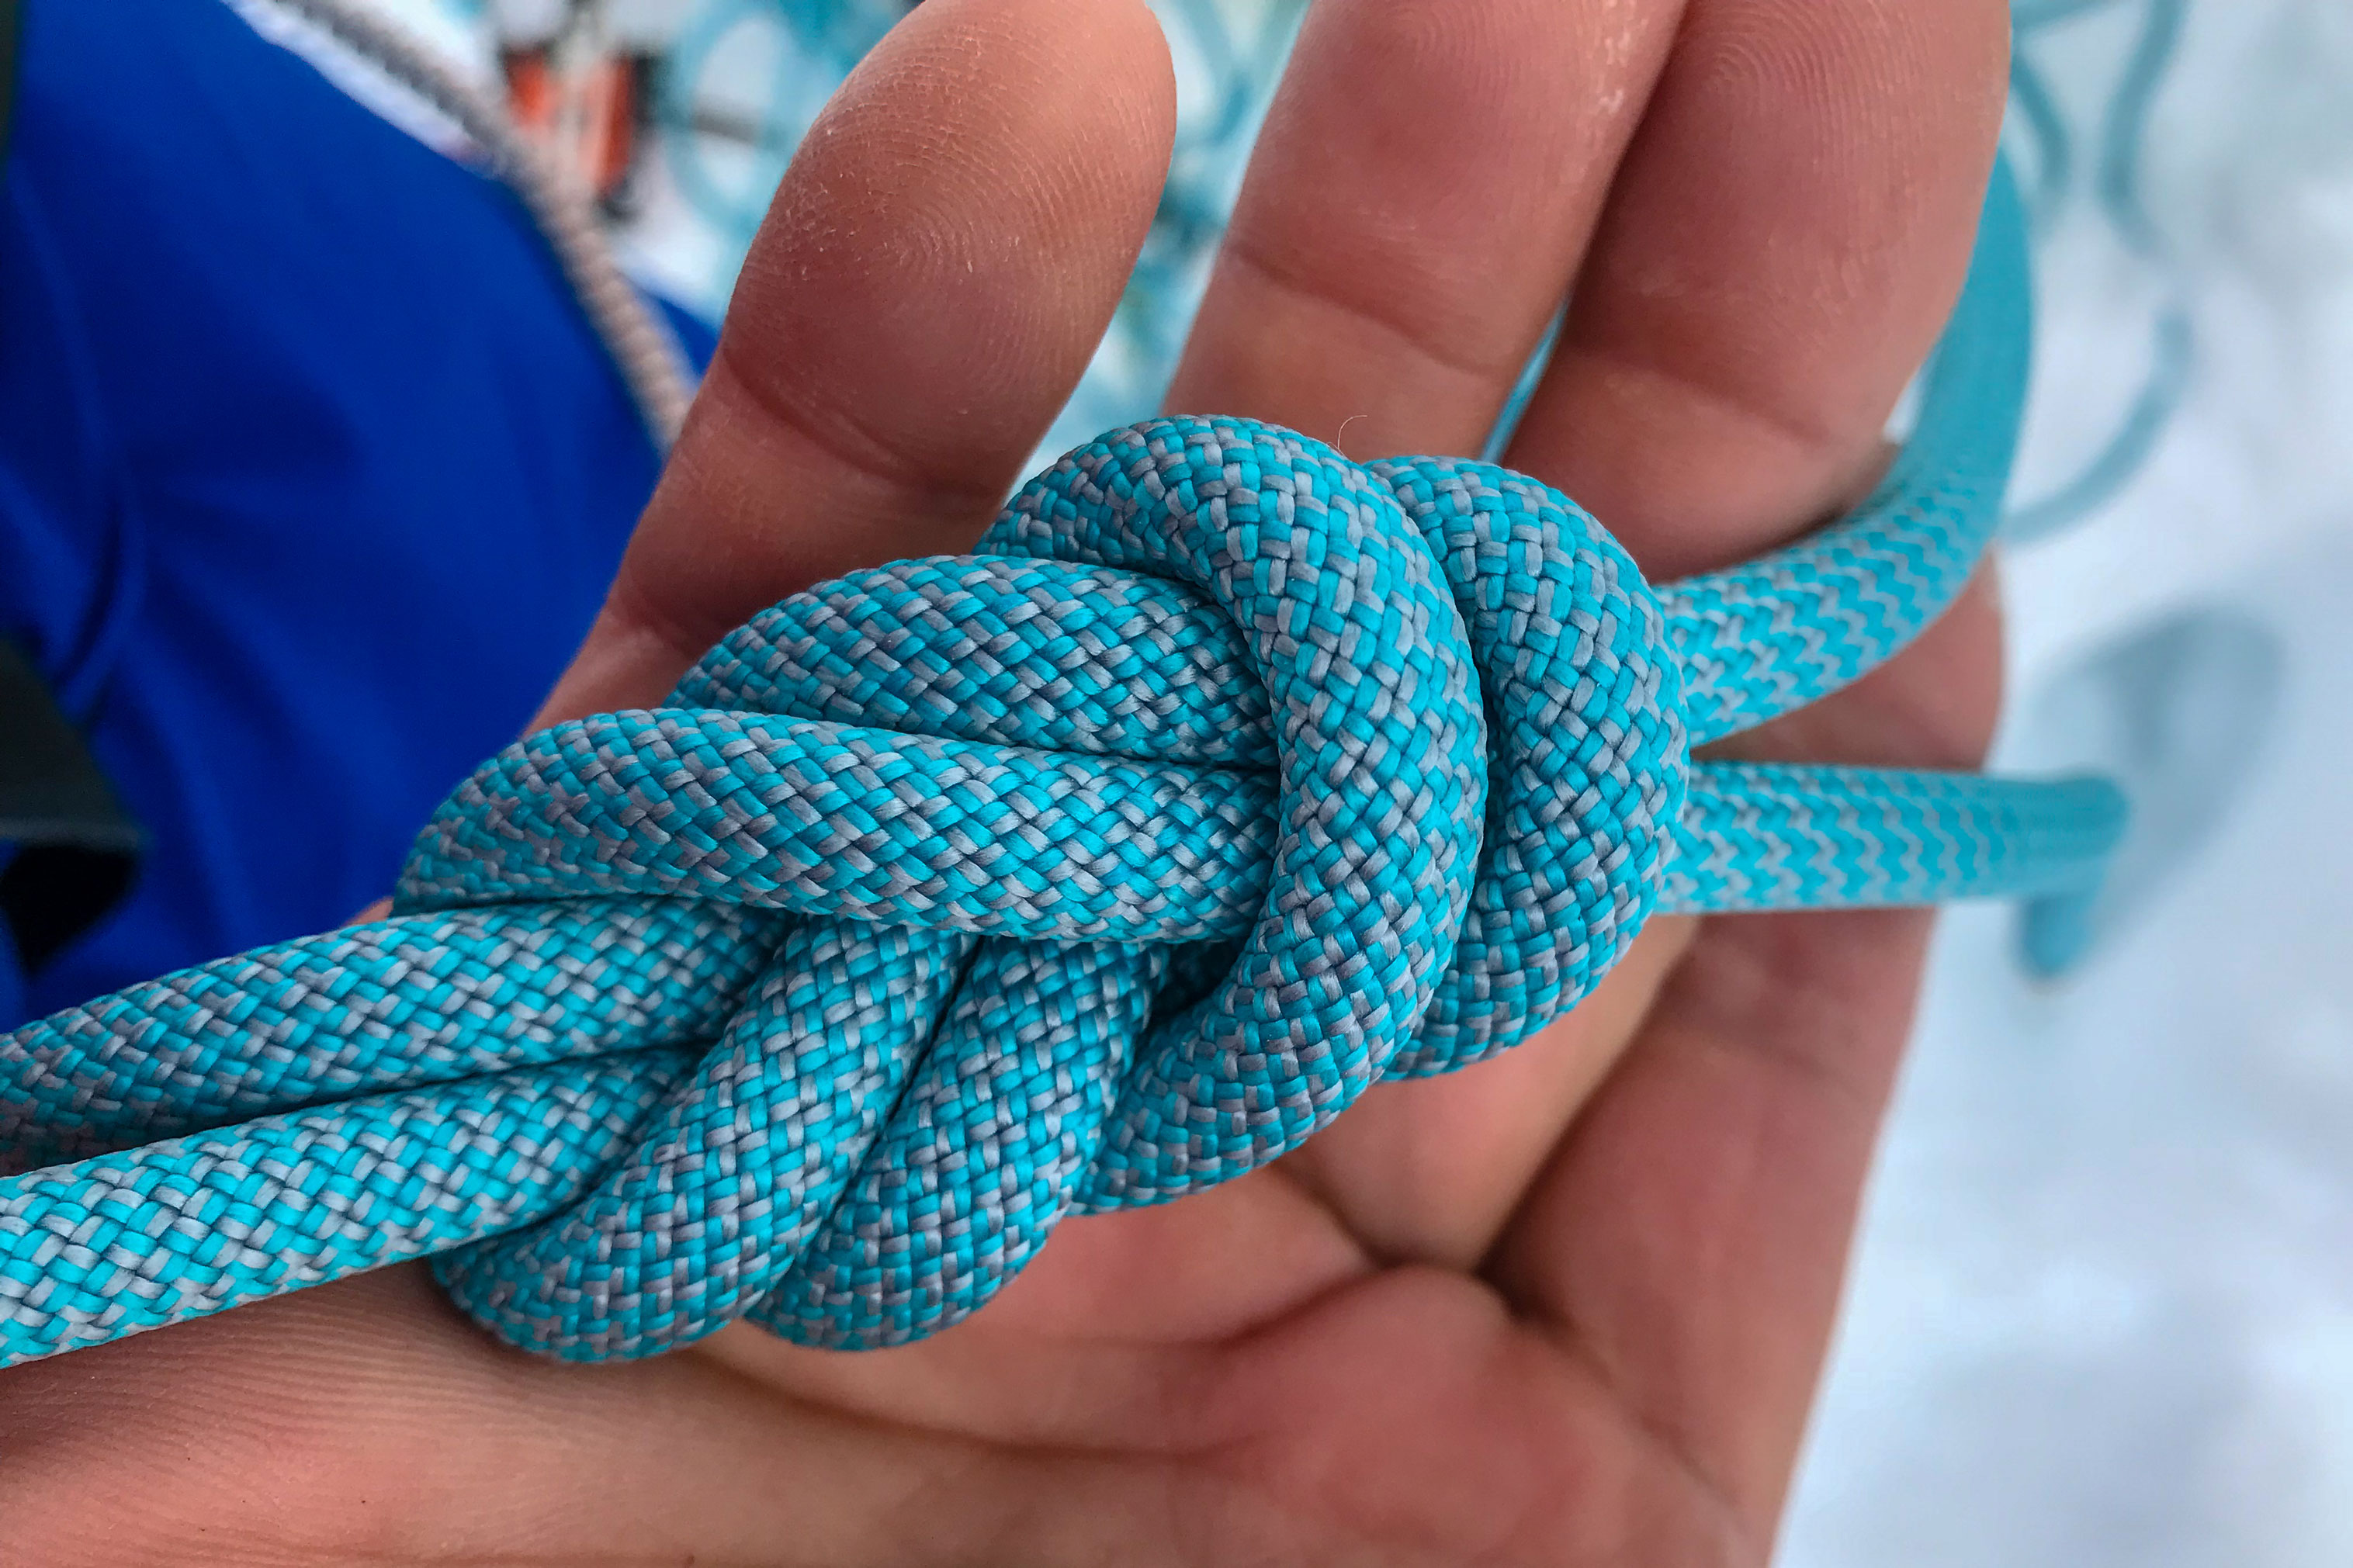 Edelrid Skimmer Pro Dry 7.1 combing rope